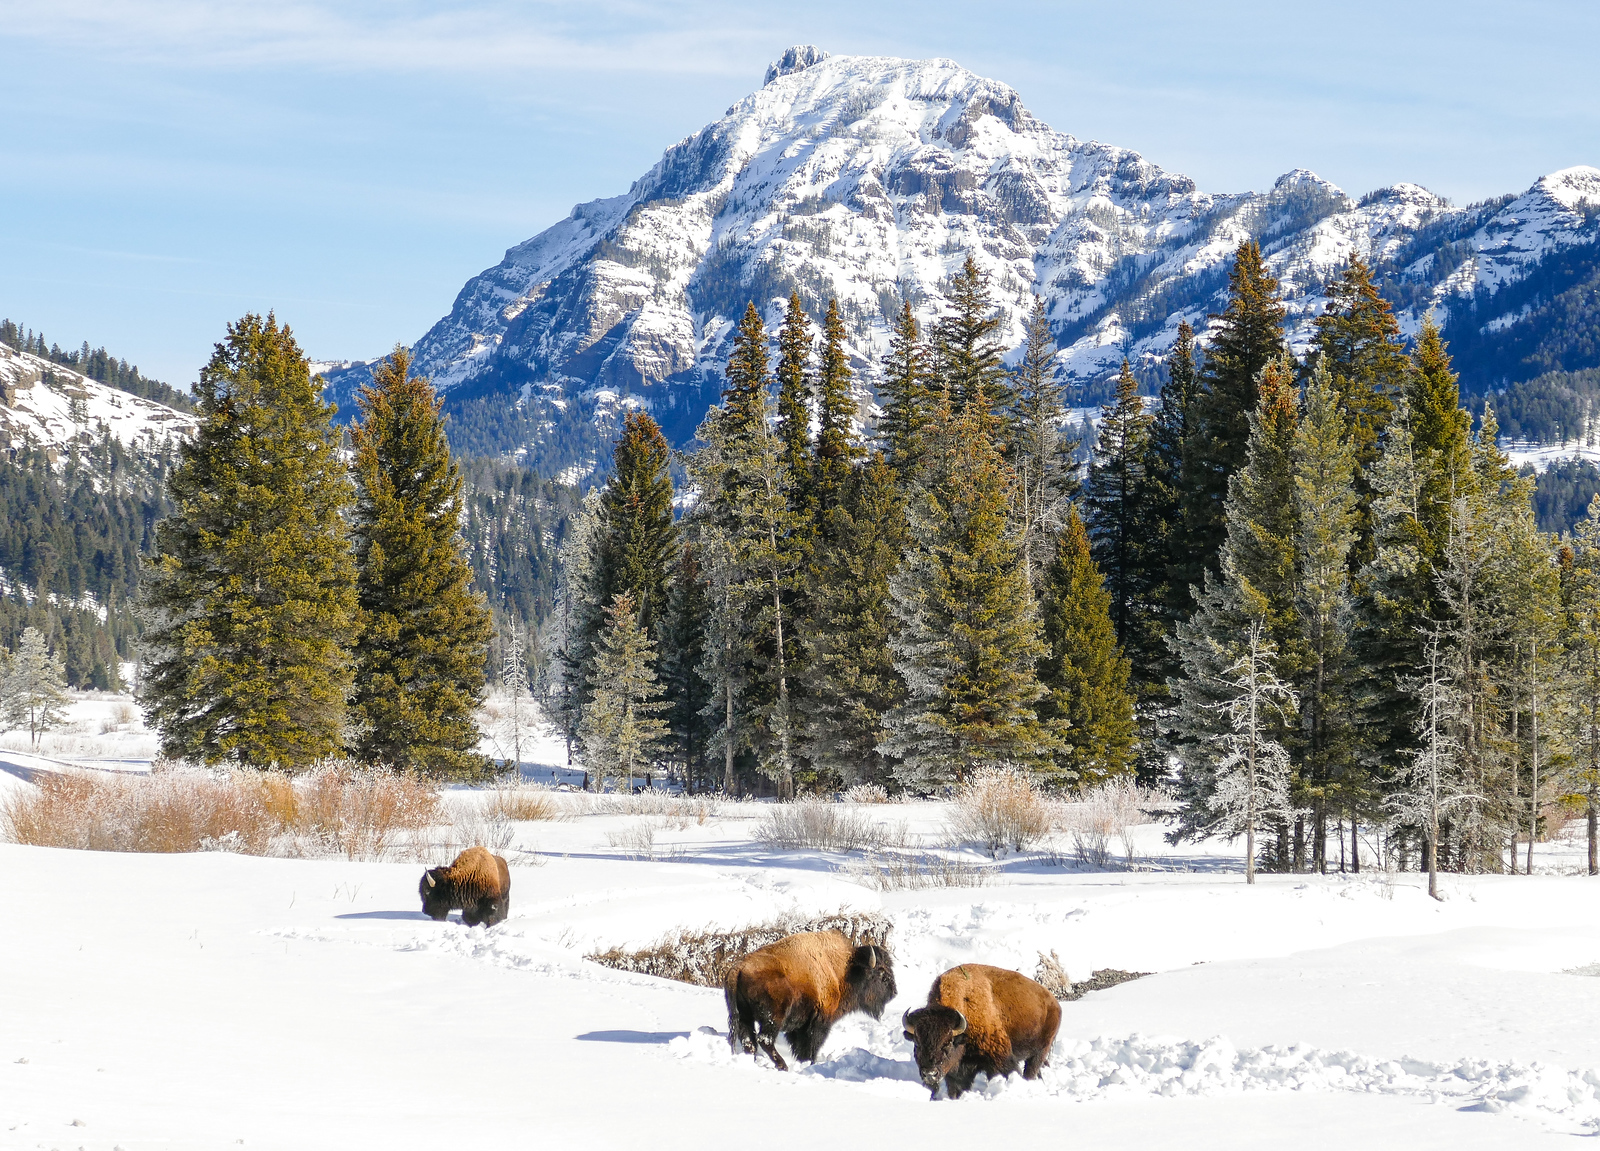 Bison struggle through deep snow in Lamar Valley of Yellowstone National Park.